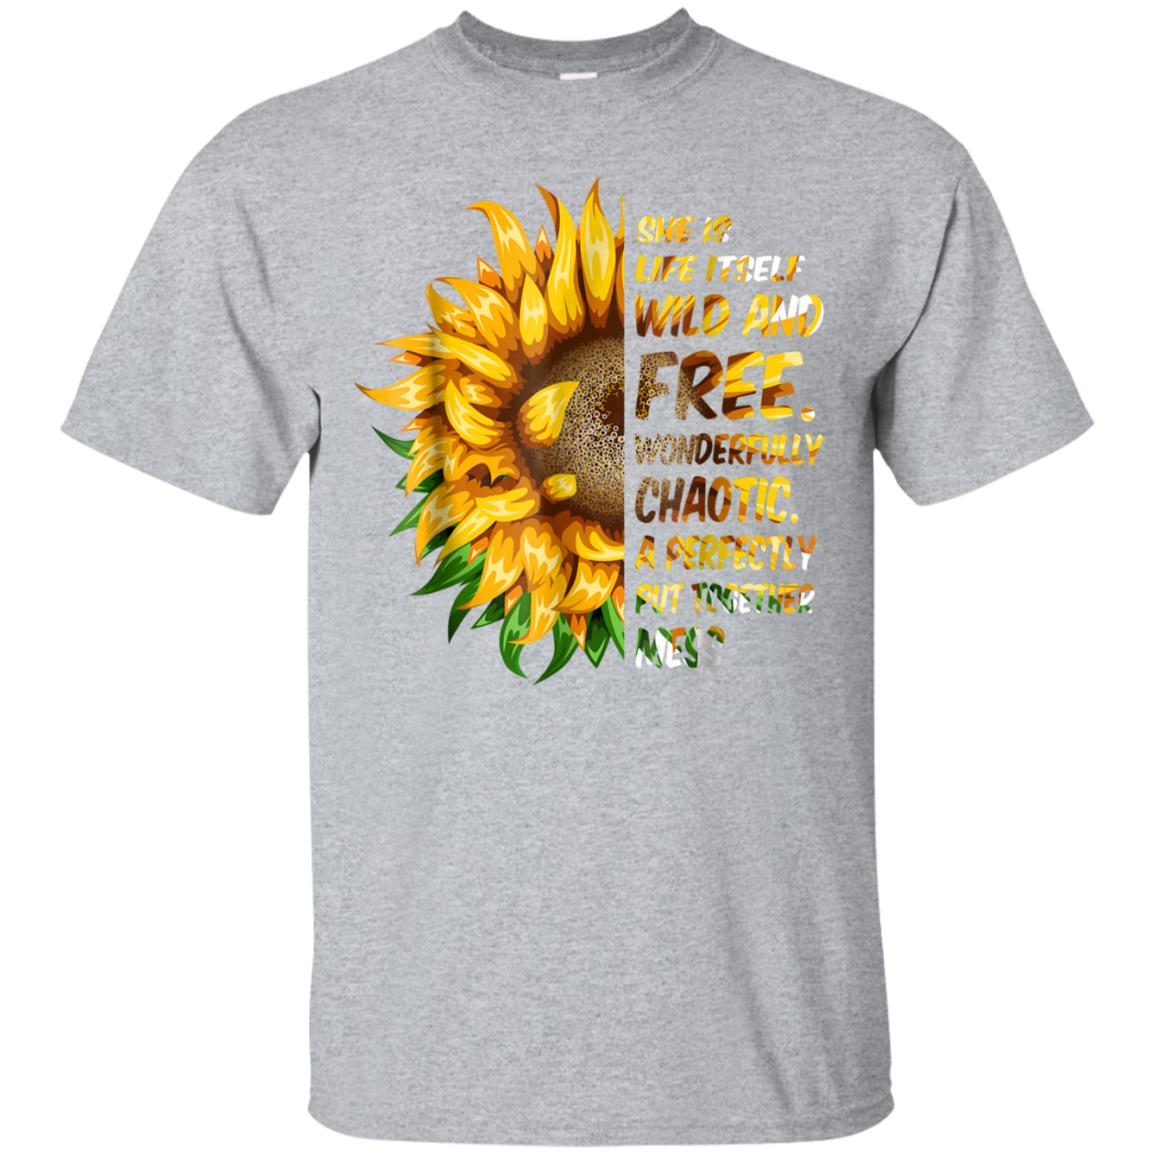 She Is Life Itself Wild And Free Sunflower T-Shirt for Women 99promocode